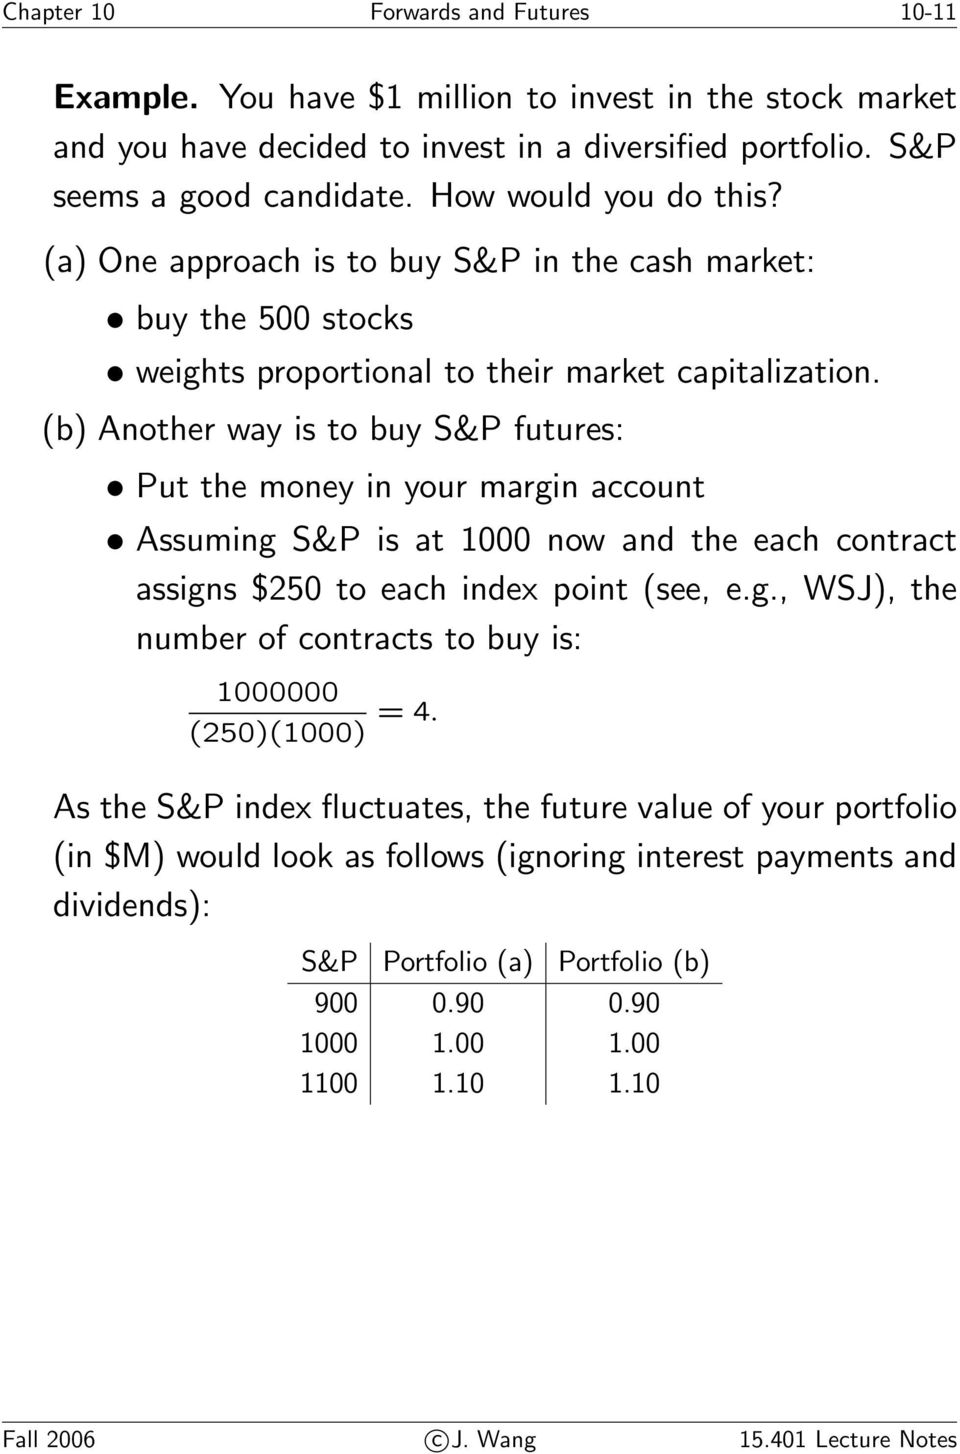 (b) Another way is to buy S&P futures: Put the money in your margin account Assuming S&P is at 1000 now and the each contract assigns $250 to each index point (see, e.g., WSJ), the number of contracts to buy is: 1000000 (250)(1000) =4.